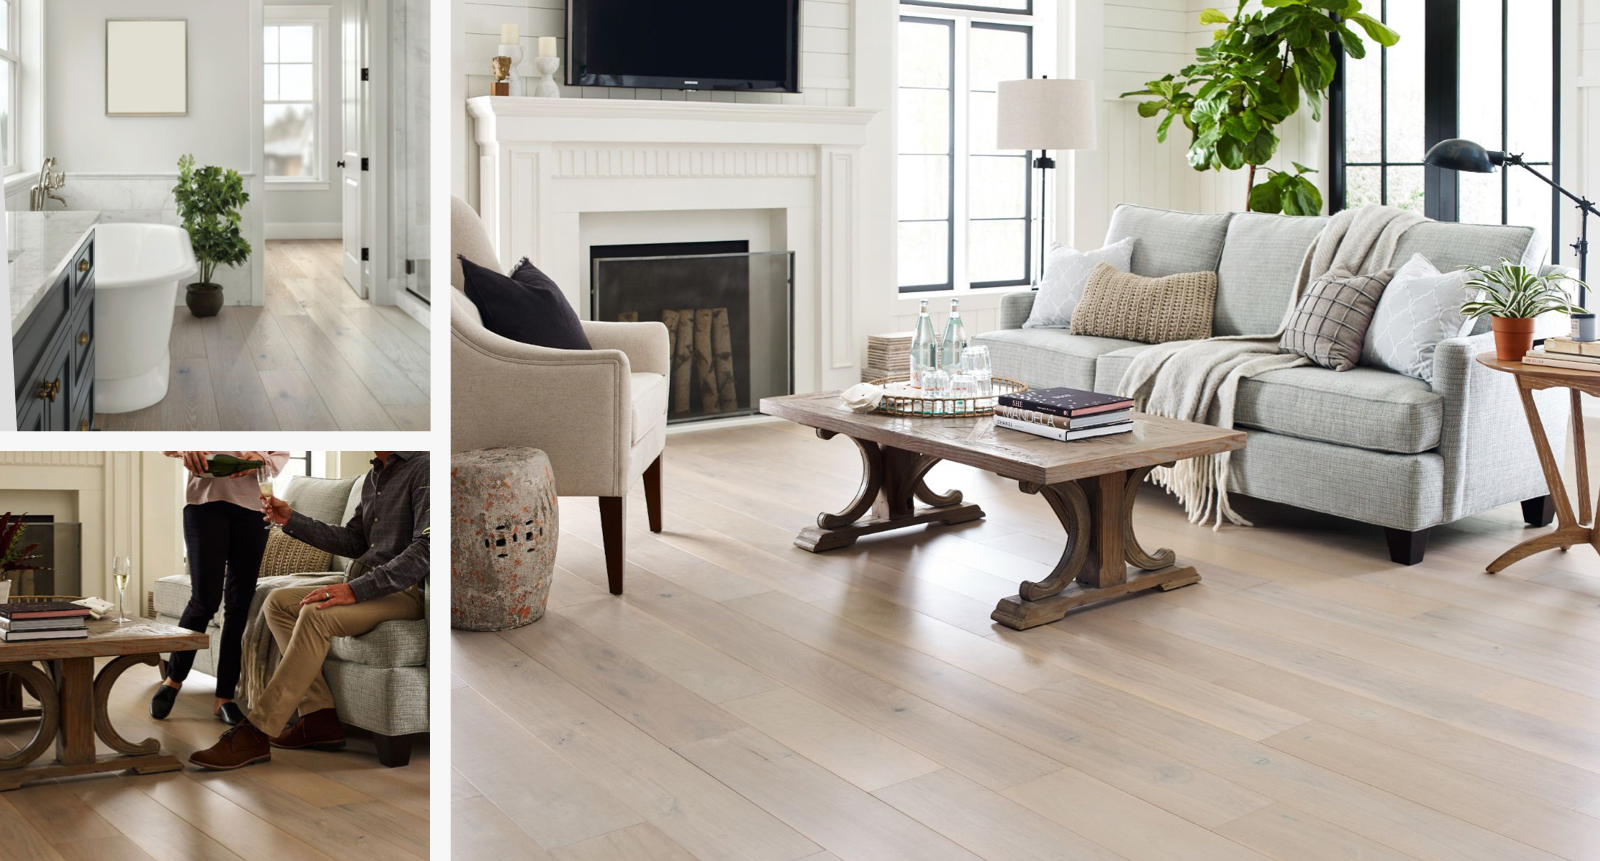 Floorte waterproof hardwood flooring for your home | Bram Flooring